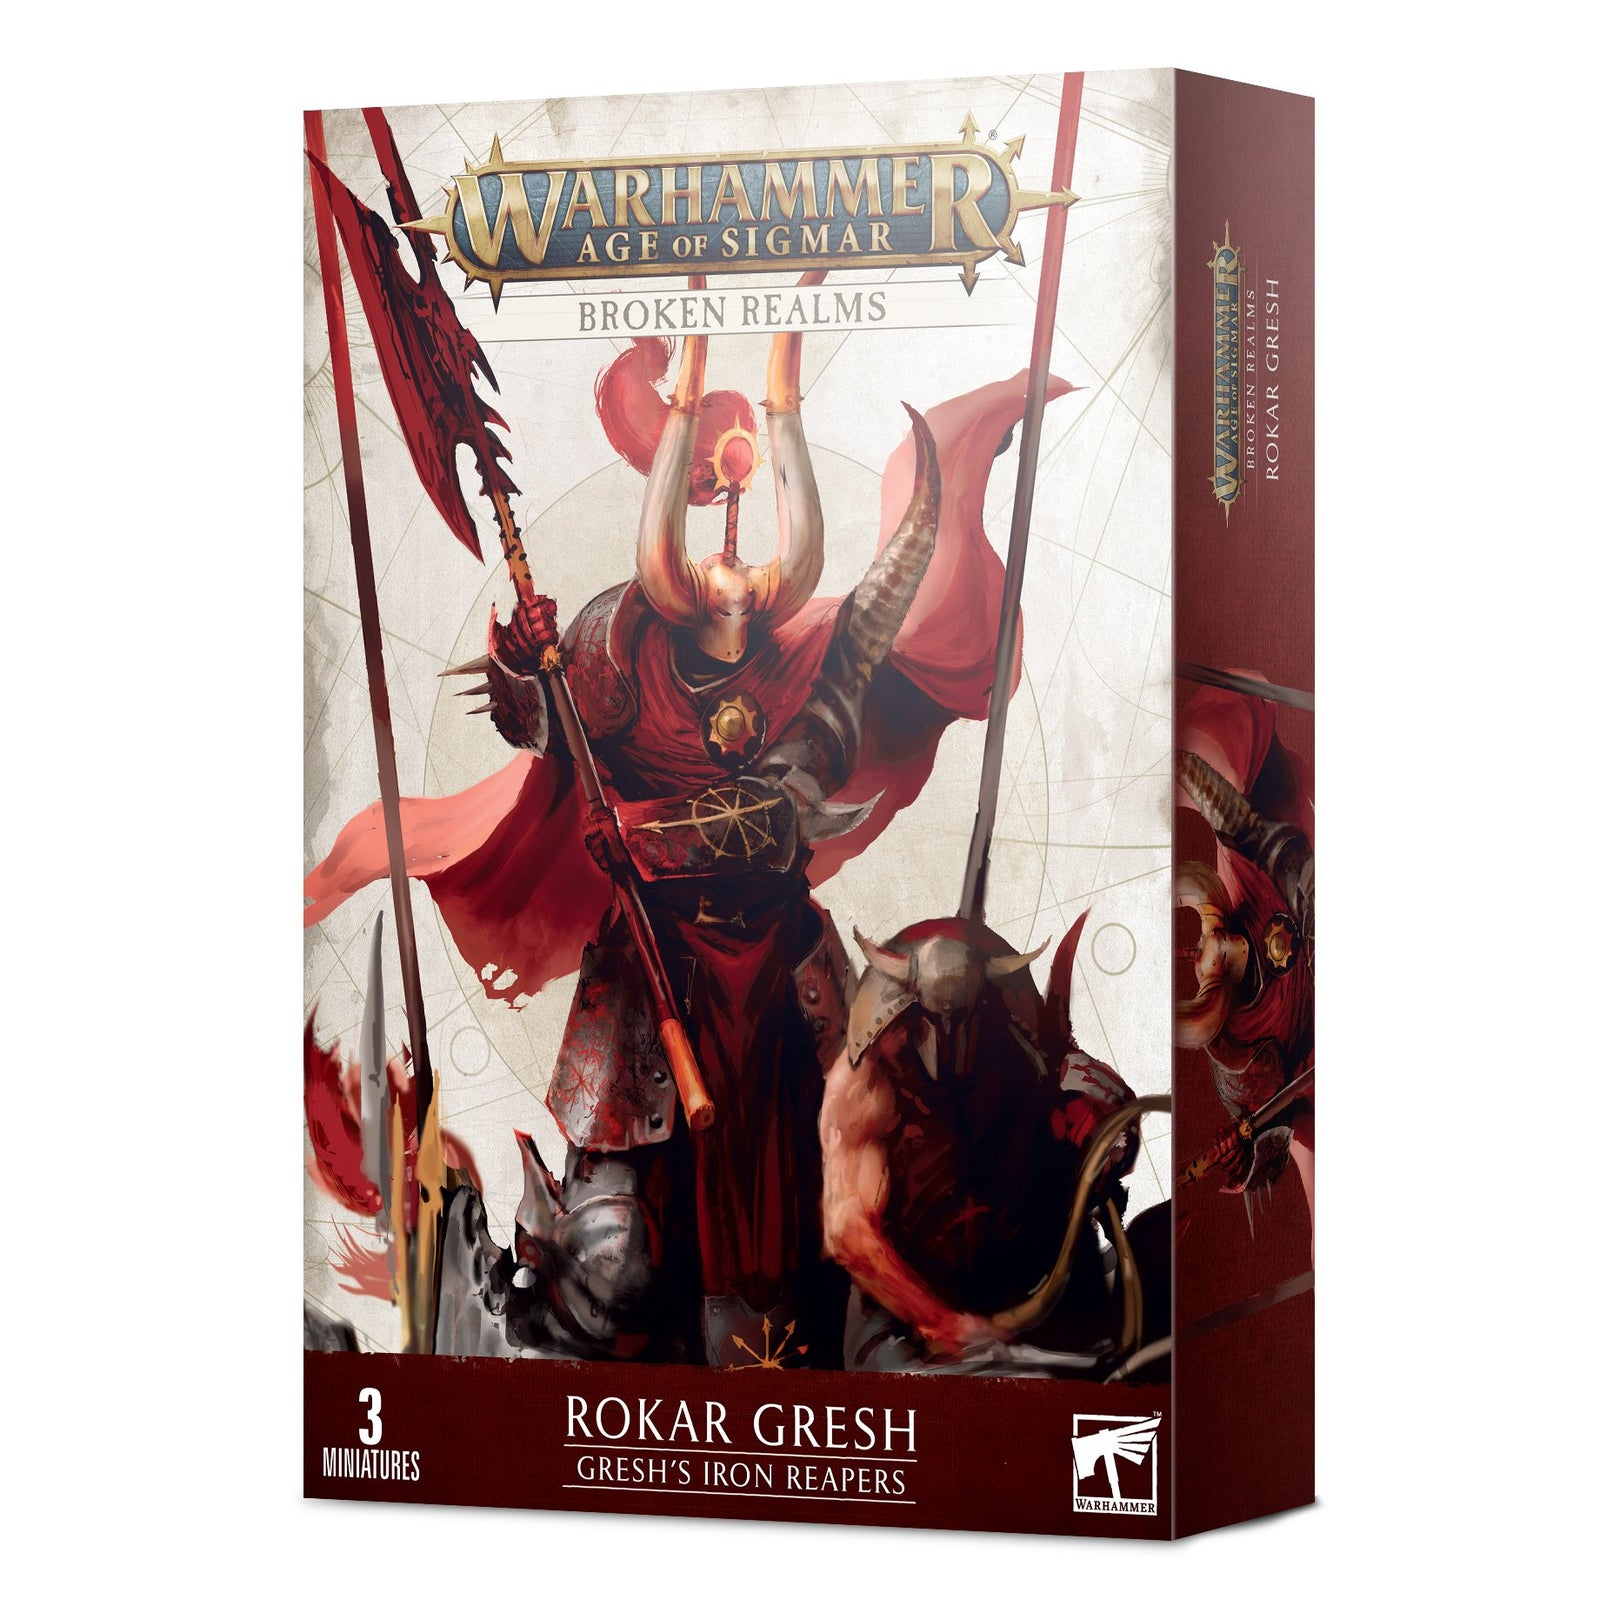 Age of Sigmar: Broken Realms - Gresh's Iron Reapers